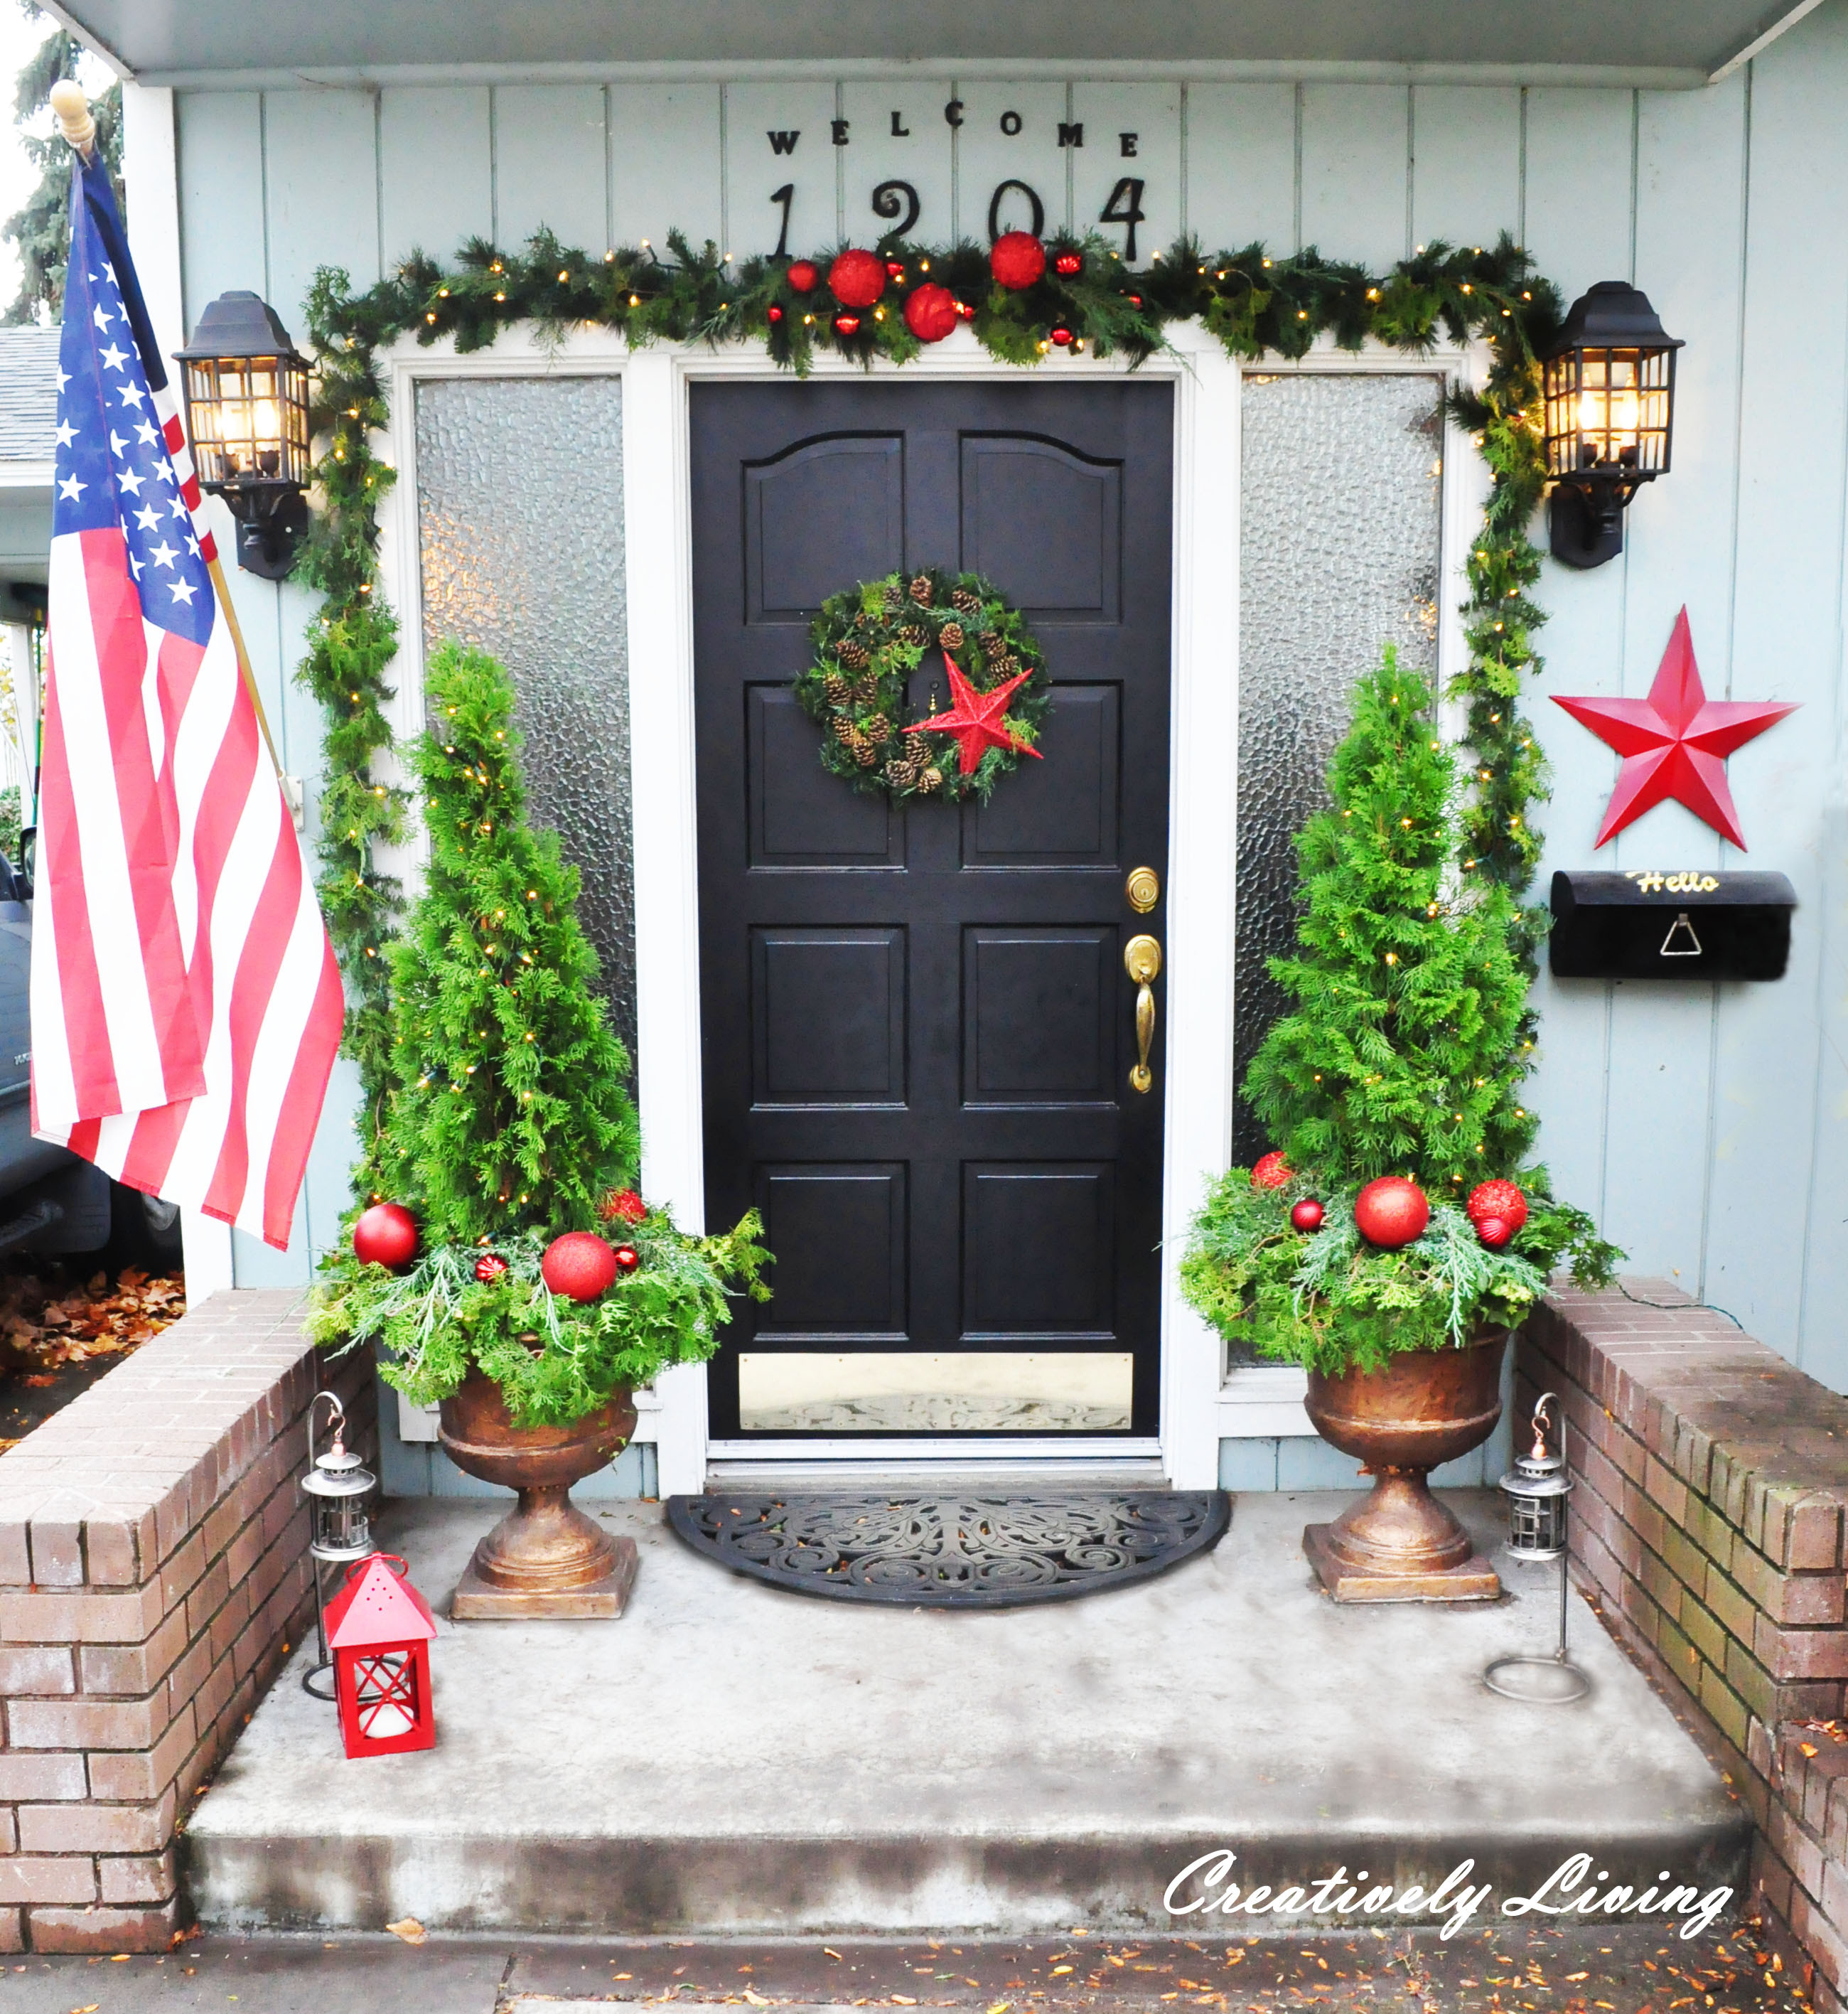 Christmas Decorations For Front Porch  Christmas Front Porch Creatively Living Blog